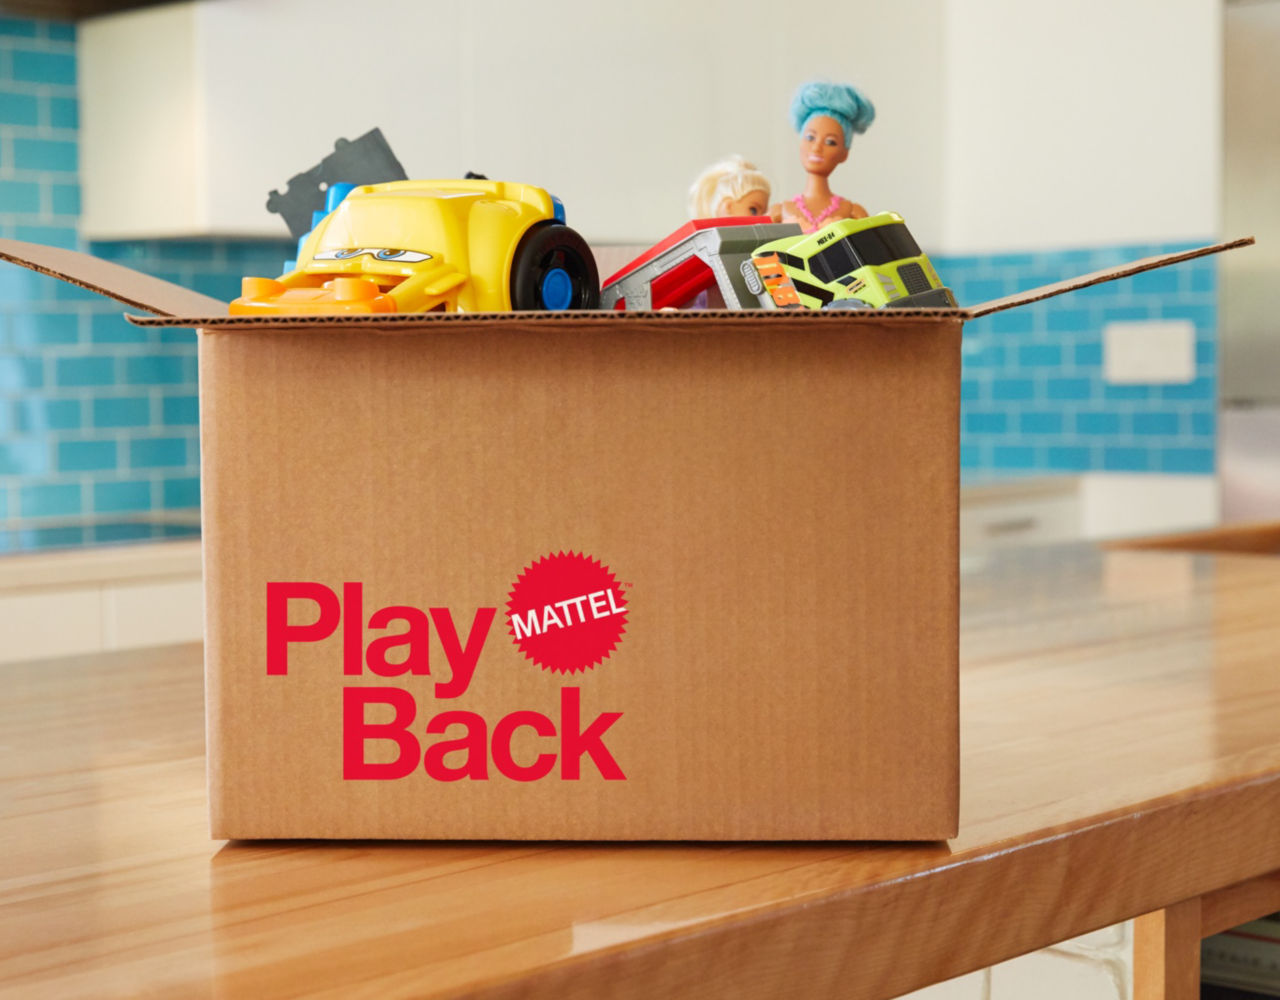 Mattel Launches Mattel Playback – Send Back Used Toys For Recycling